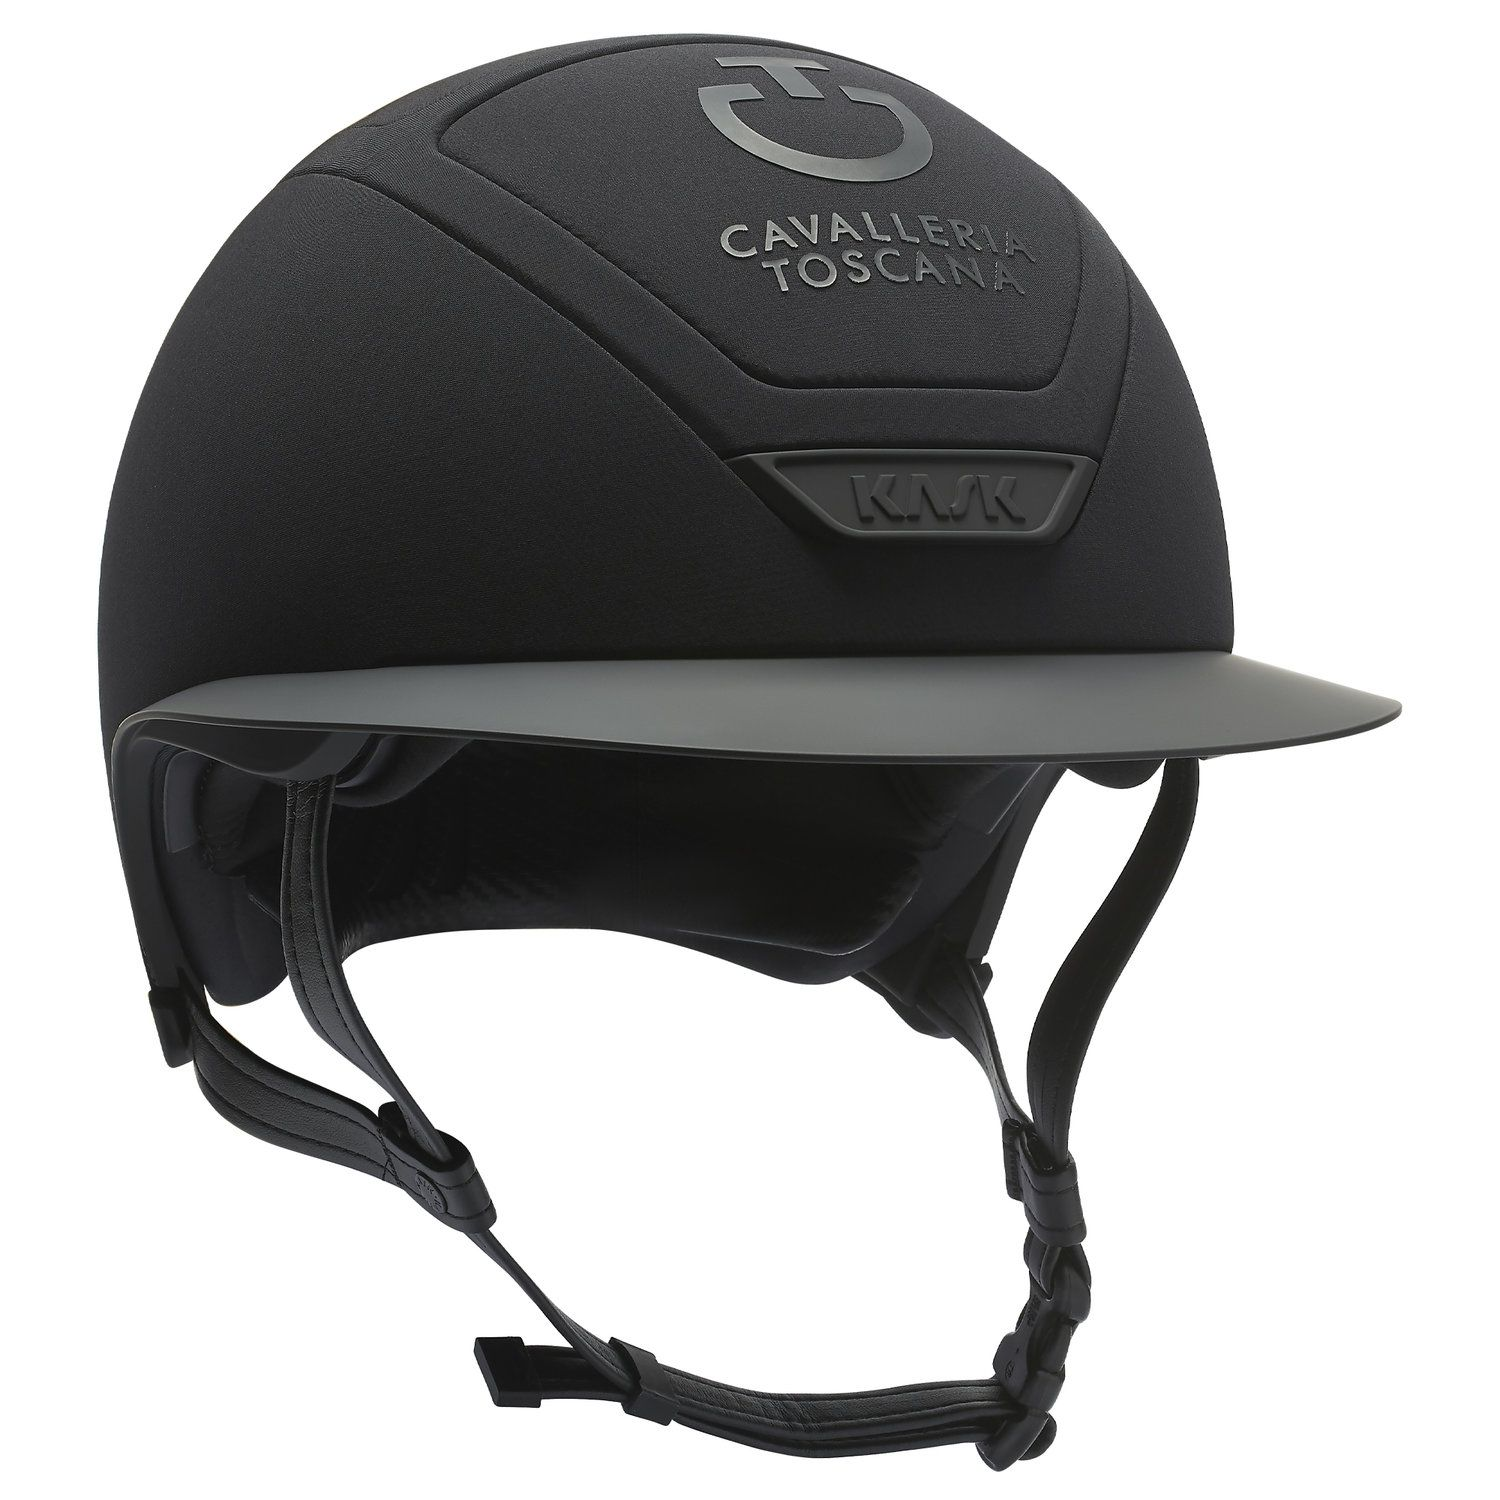 Wide brim riding helmet